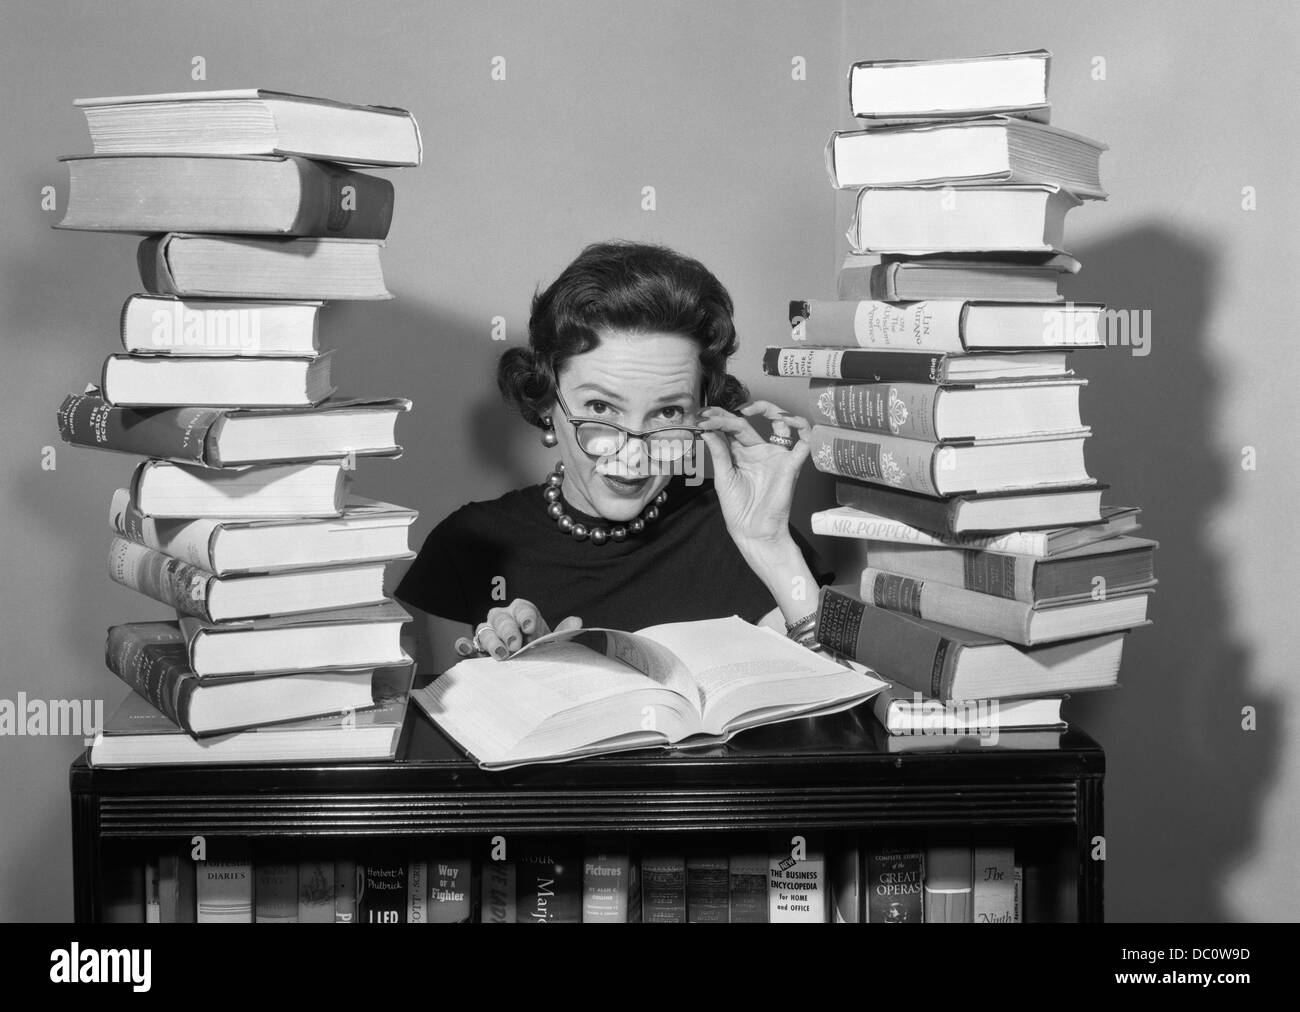 1950s WOMAN SITTING BETWEEN STACKS OF BOOKS PULLING DOWN GLASSES TO LOOK OVER RIMS - Stock Image